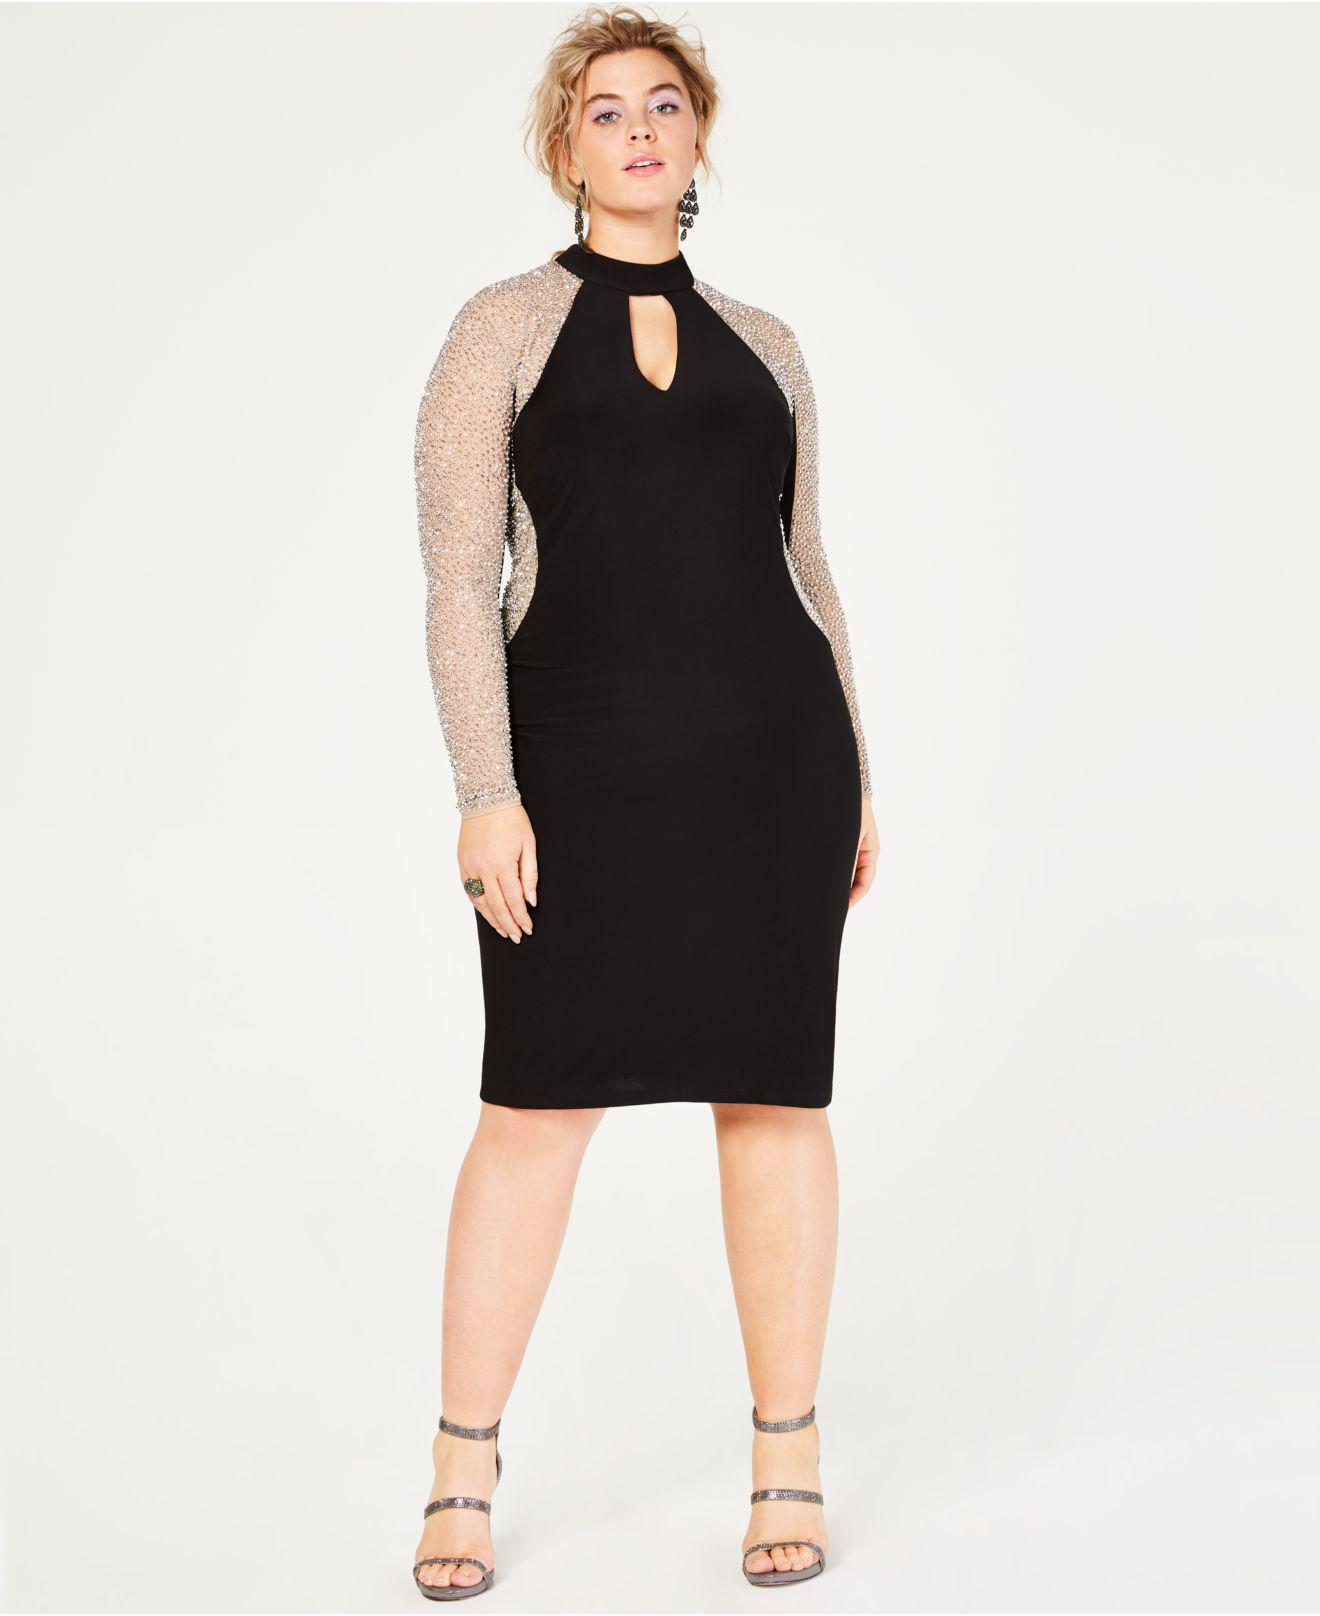 18d7be9f3d4 Lyst - Xscape Plus Size Caviar-beaded Illusion Dress in Black